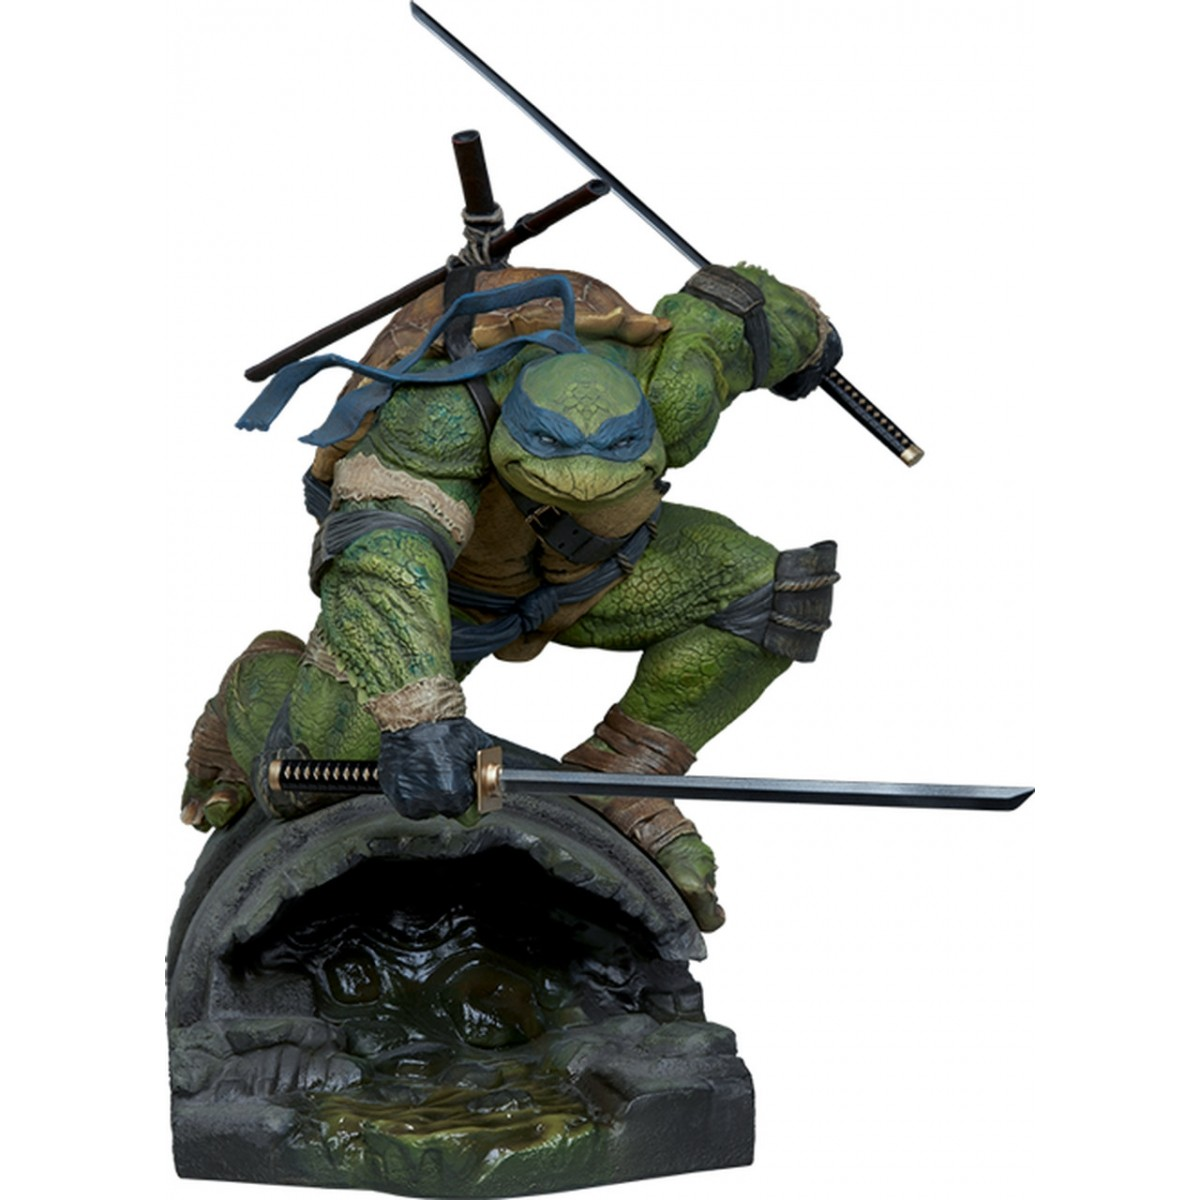 Estátua Leonardo: Tartarugas Ninjas (Teenage Mutant Ninja Turtles) - Sideshow - CD